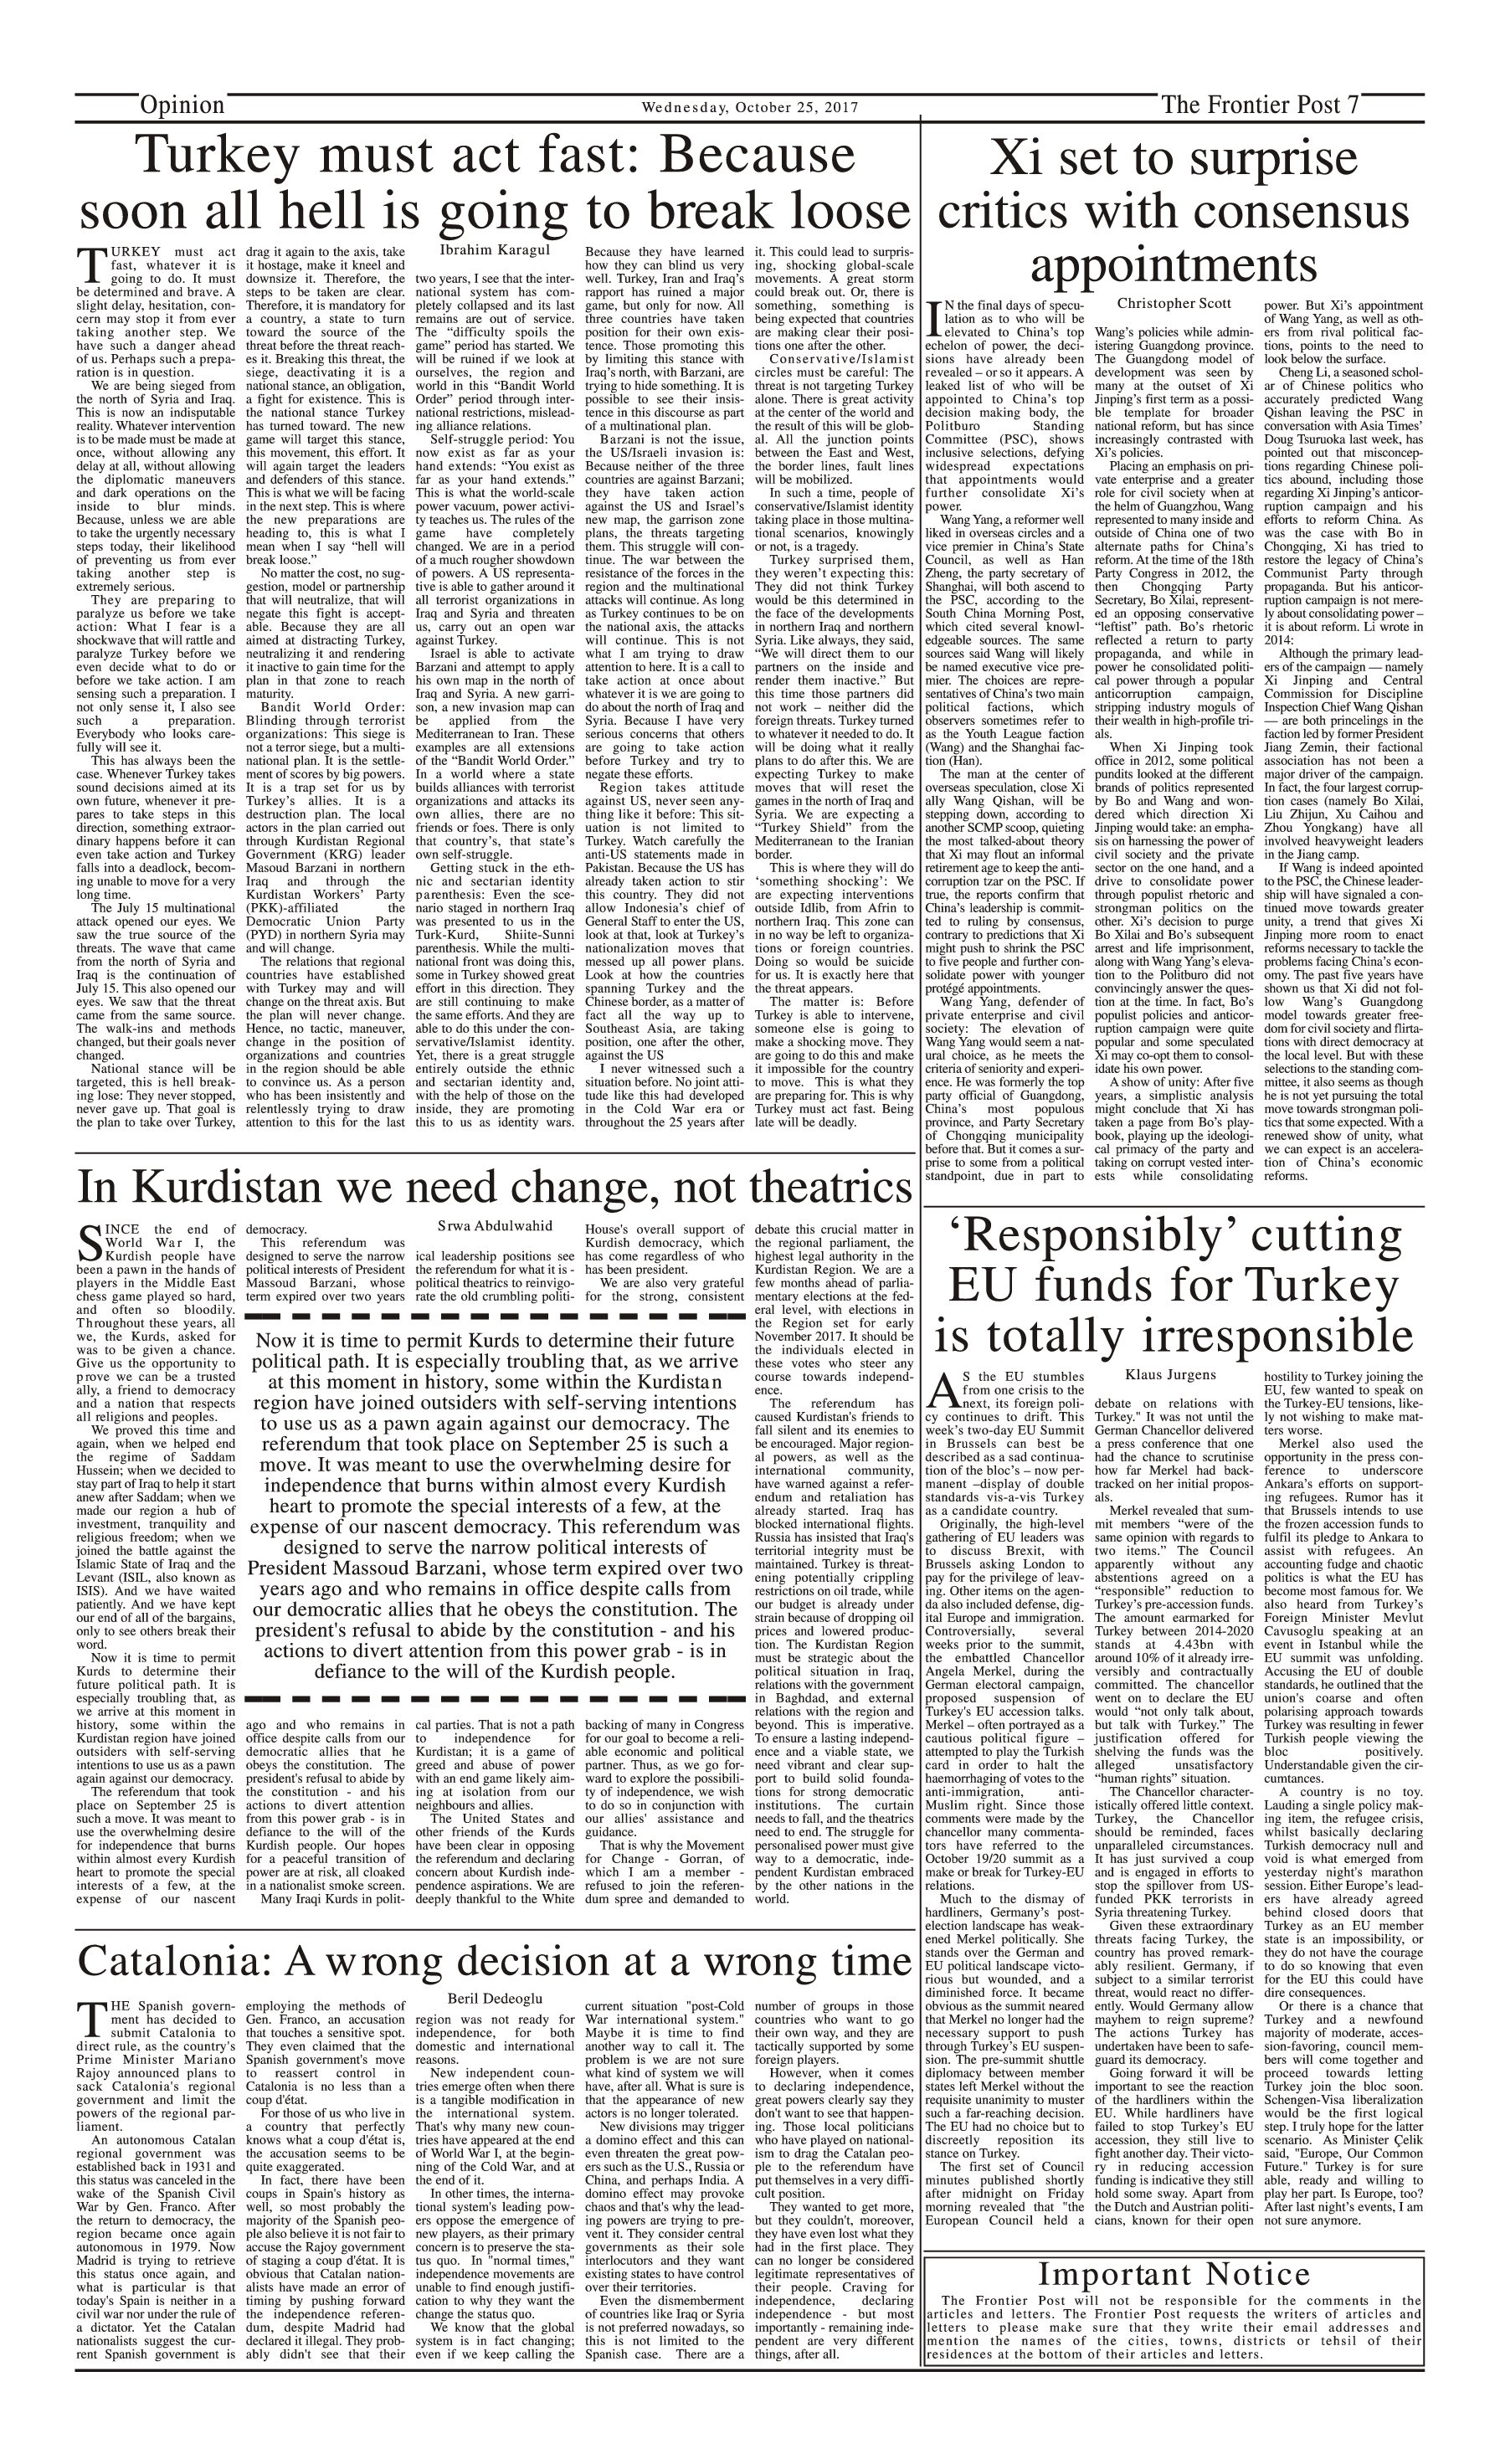 Opinion Page 25-10